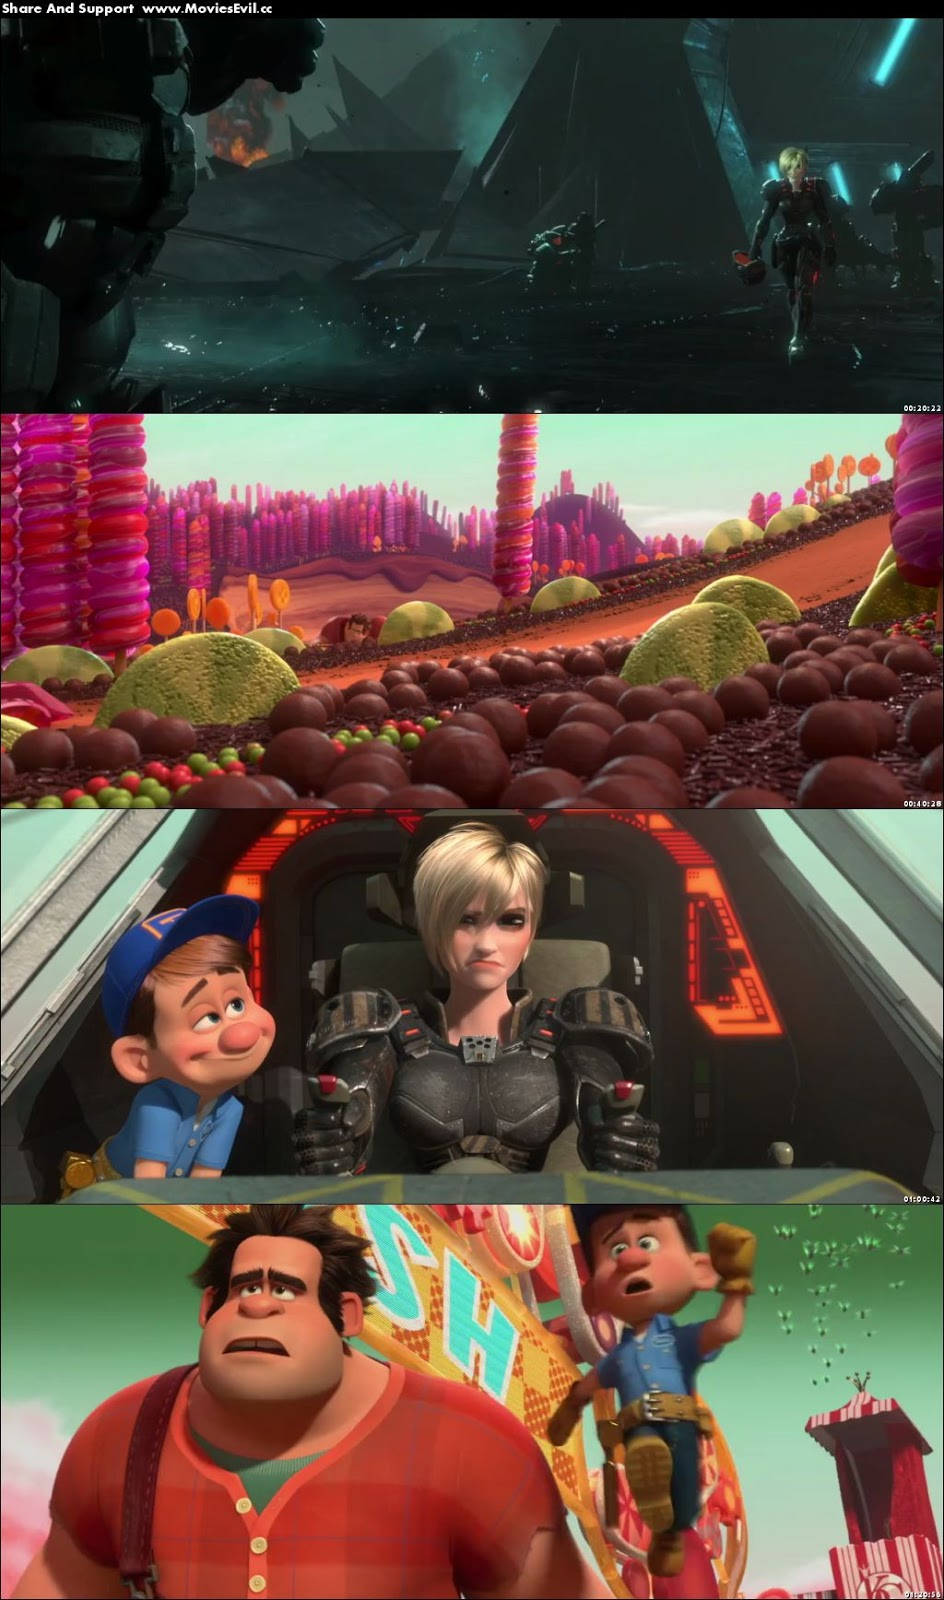 Wreck It Ralph 2012 Dual Audio 720p BluRay x264 ESub,Wreck It Ralph 2012 full movie download,,Wreck It Ralph 2012 movie download hd,Wreck It Ralph 2012 300 mb download,Wreck It Ralph 2012 direct link download,Wreck It Ralph 2012 1080p BluRay download,Wreck It Ralph 2012 hindi dubbed download,Wreck It Ralph 2012 worldfree4u download